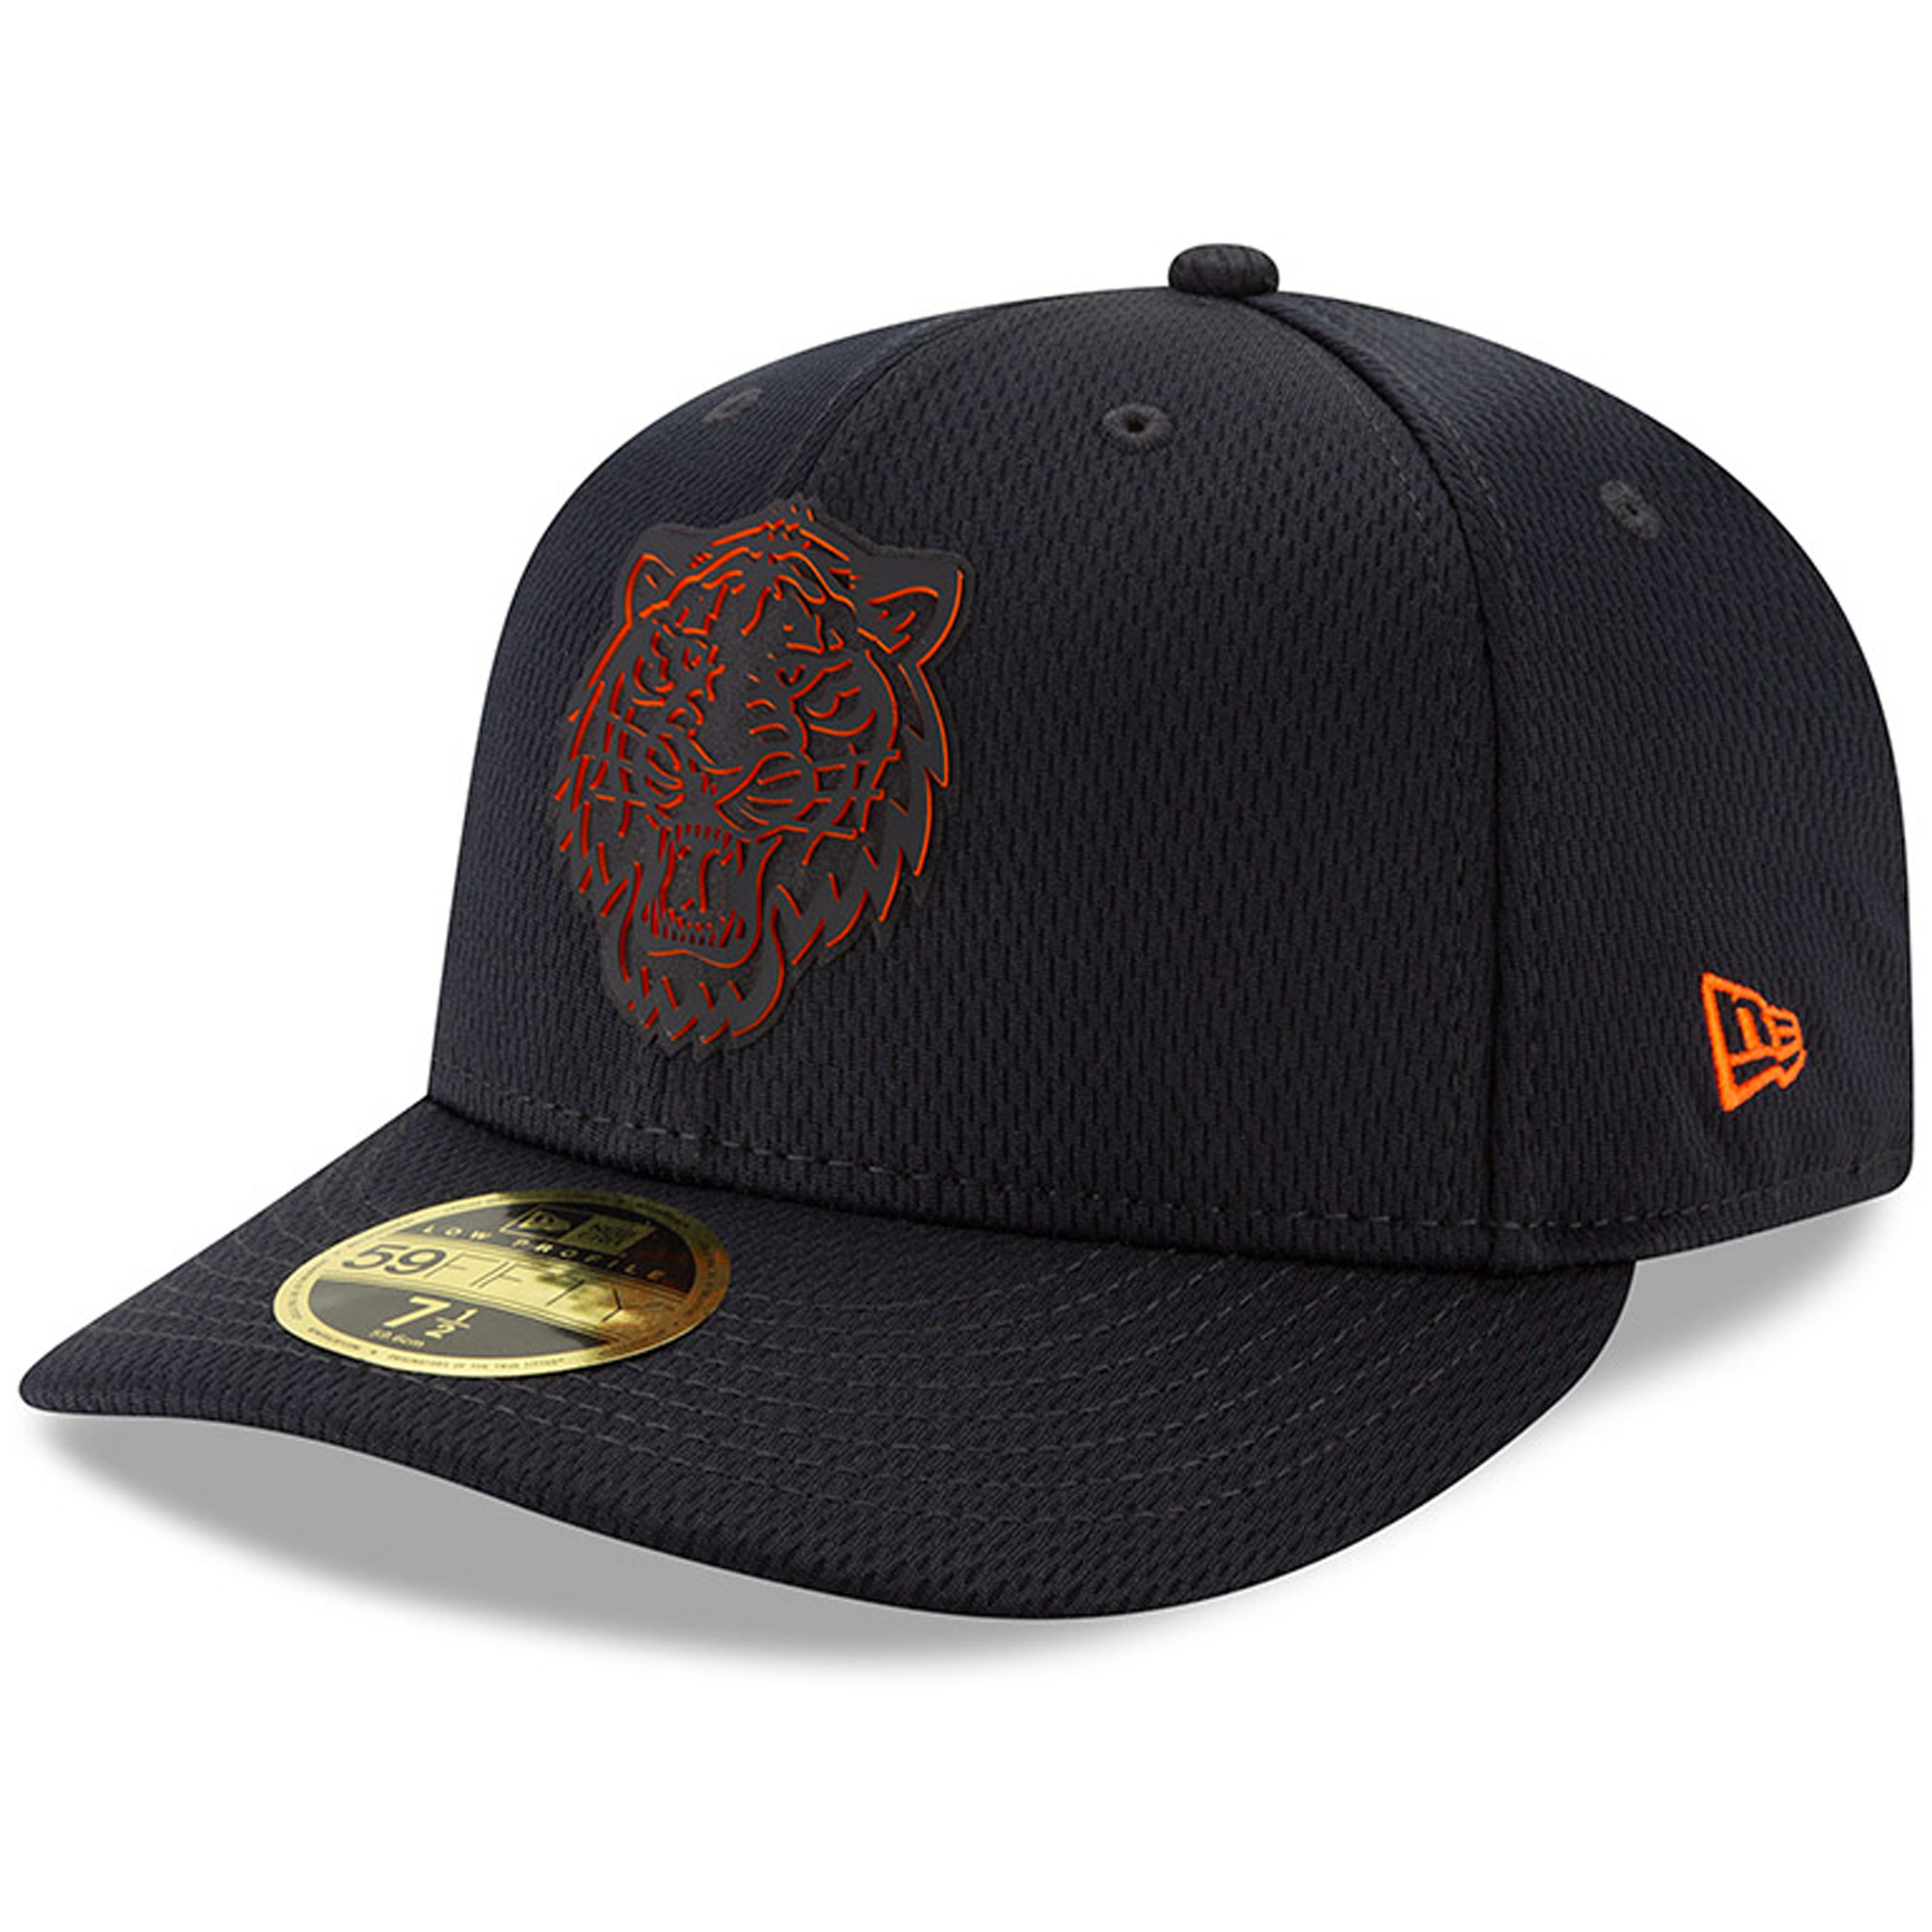 Detroit Tigers New Era 2019 Clubhouse Collection Low Profile 59FIFTY Fitted Hat - Black